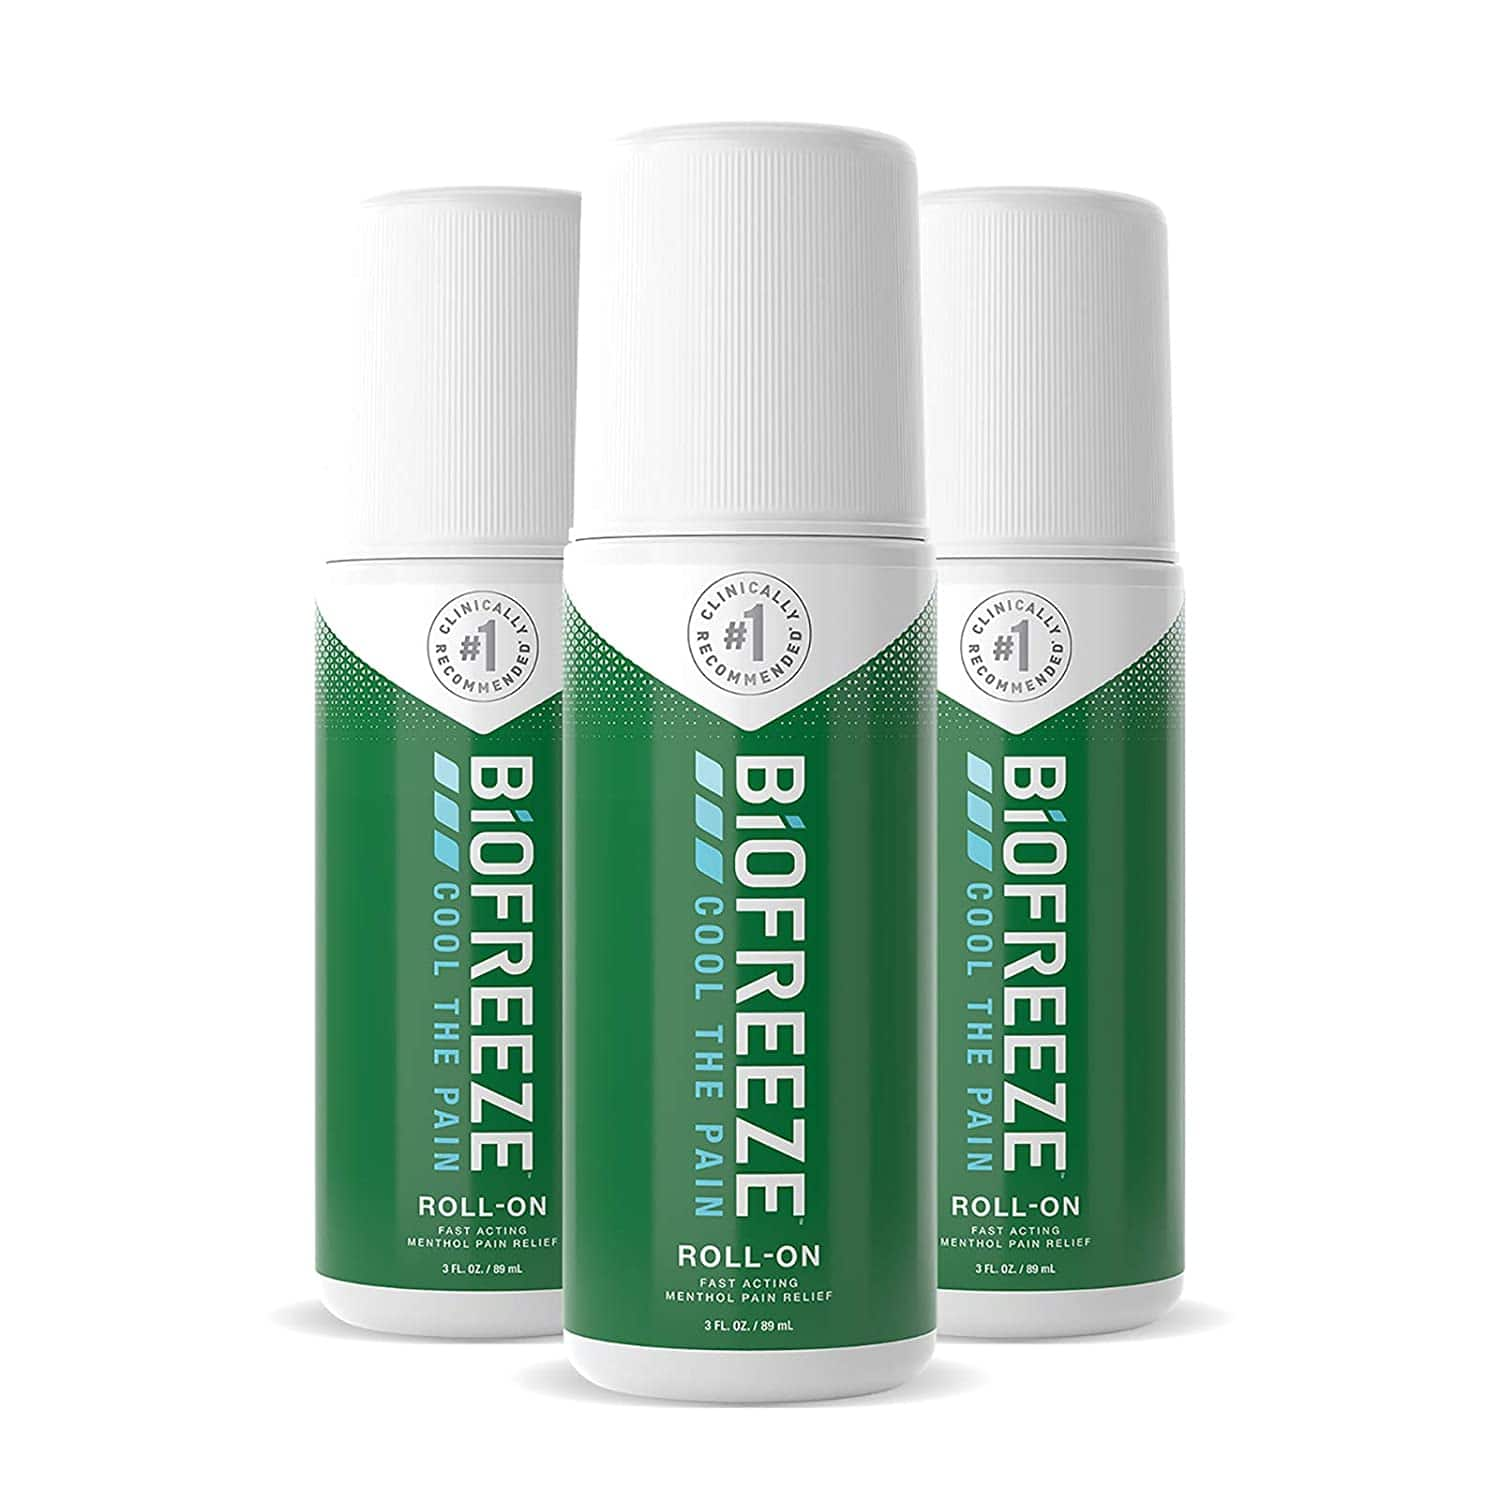 3-Pack 3-Oz Biofreeze Pain Relief Roll-On $14.31 & More + Free Shipping w/ Prime or on $25+